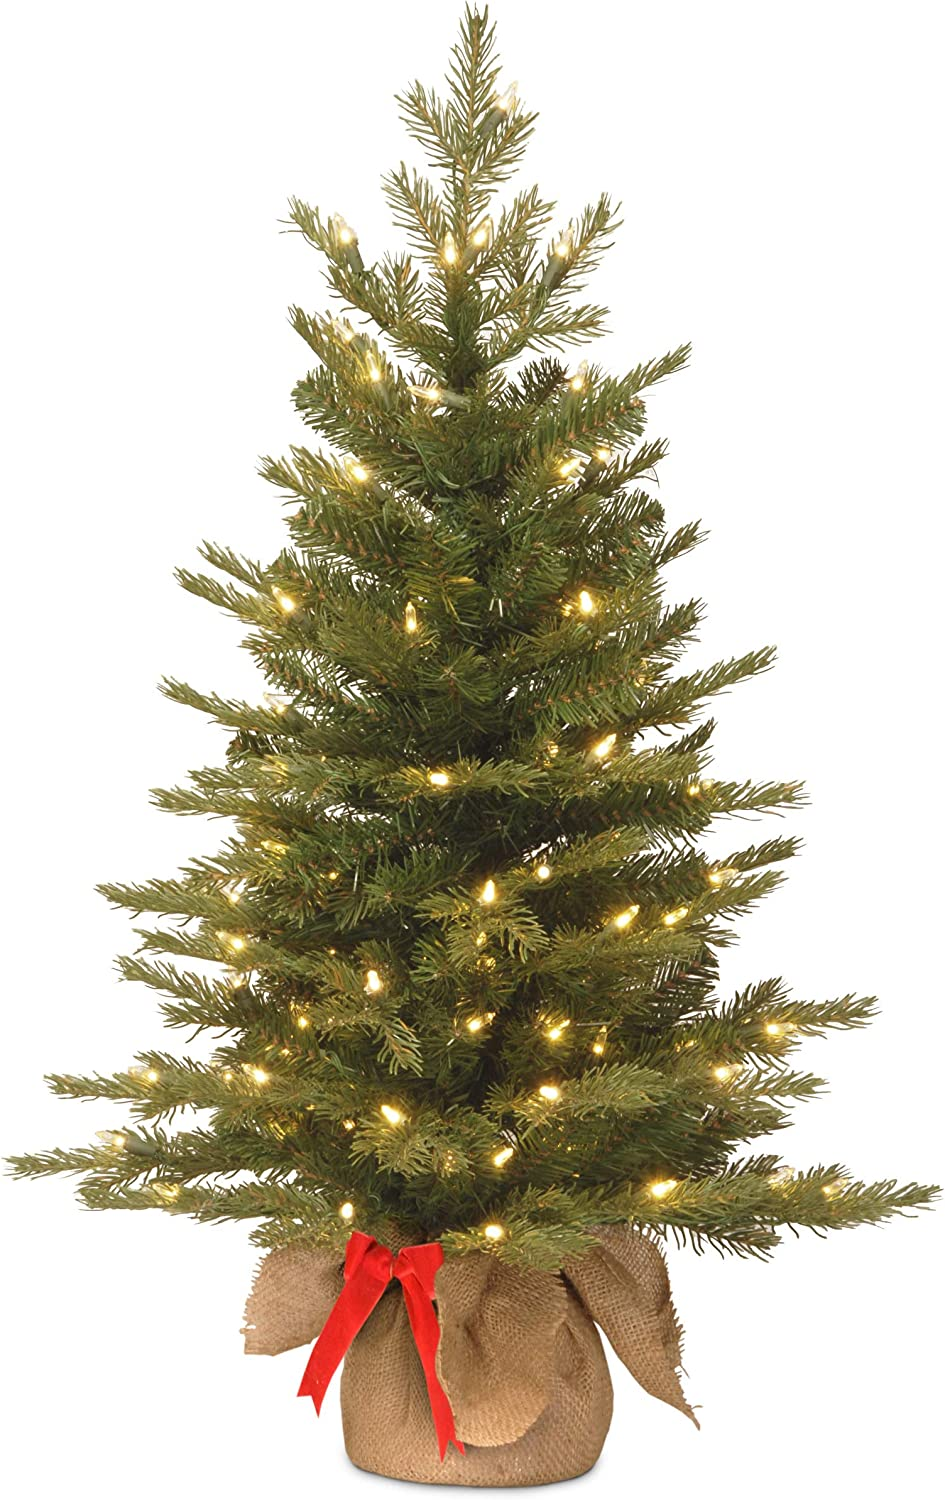 National Purchase Max 45% OFF Tree Company Pre-lit I Artificial Christmas Mini